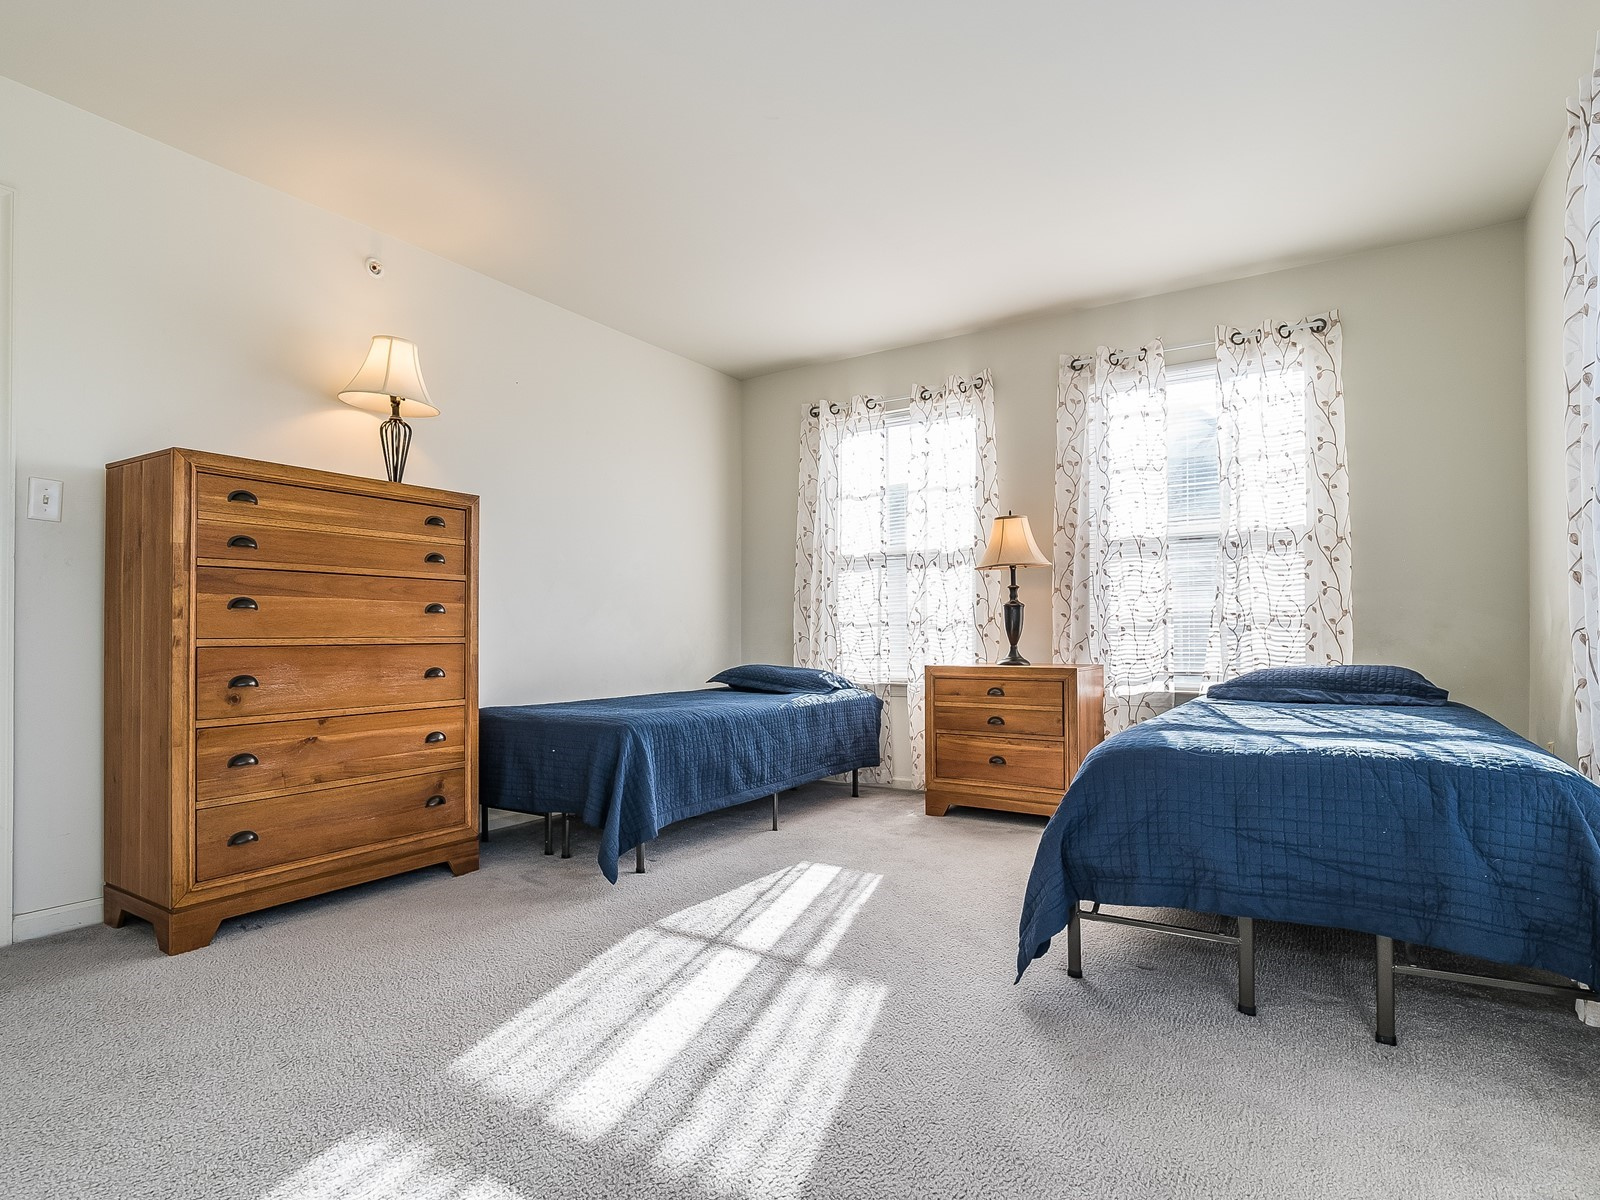 North Brunswick 430 Furnished Rental third bedroom with two twin beds